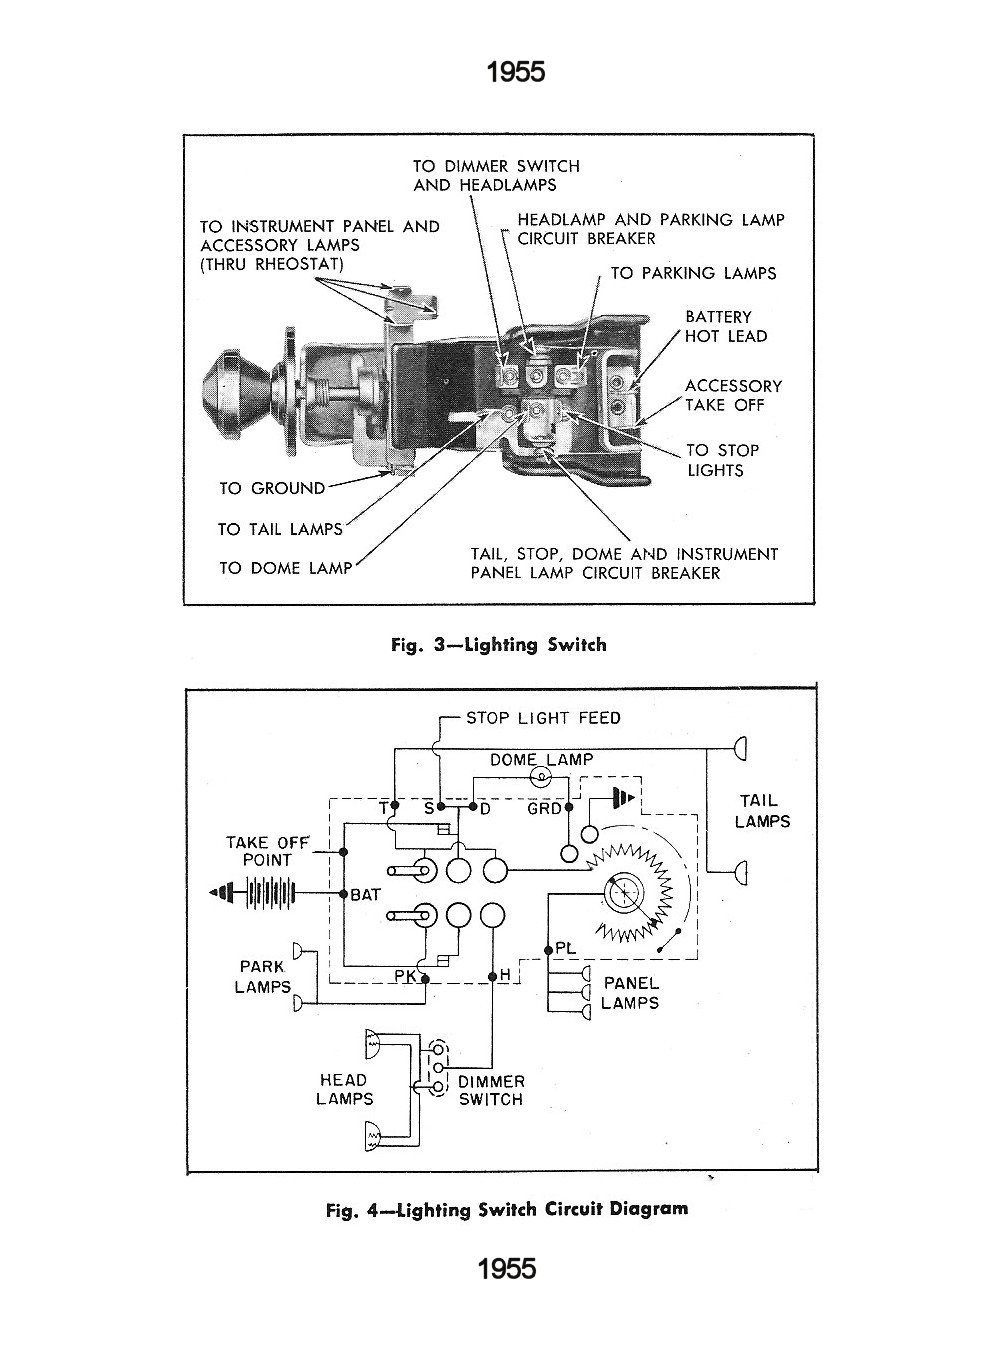 55csm1204a chevy wiring diagrams 1955 chevy ignition switch wiring diagram at fashall.co